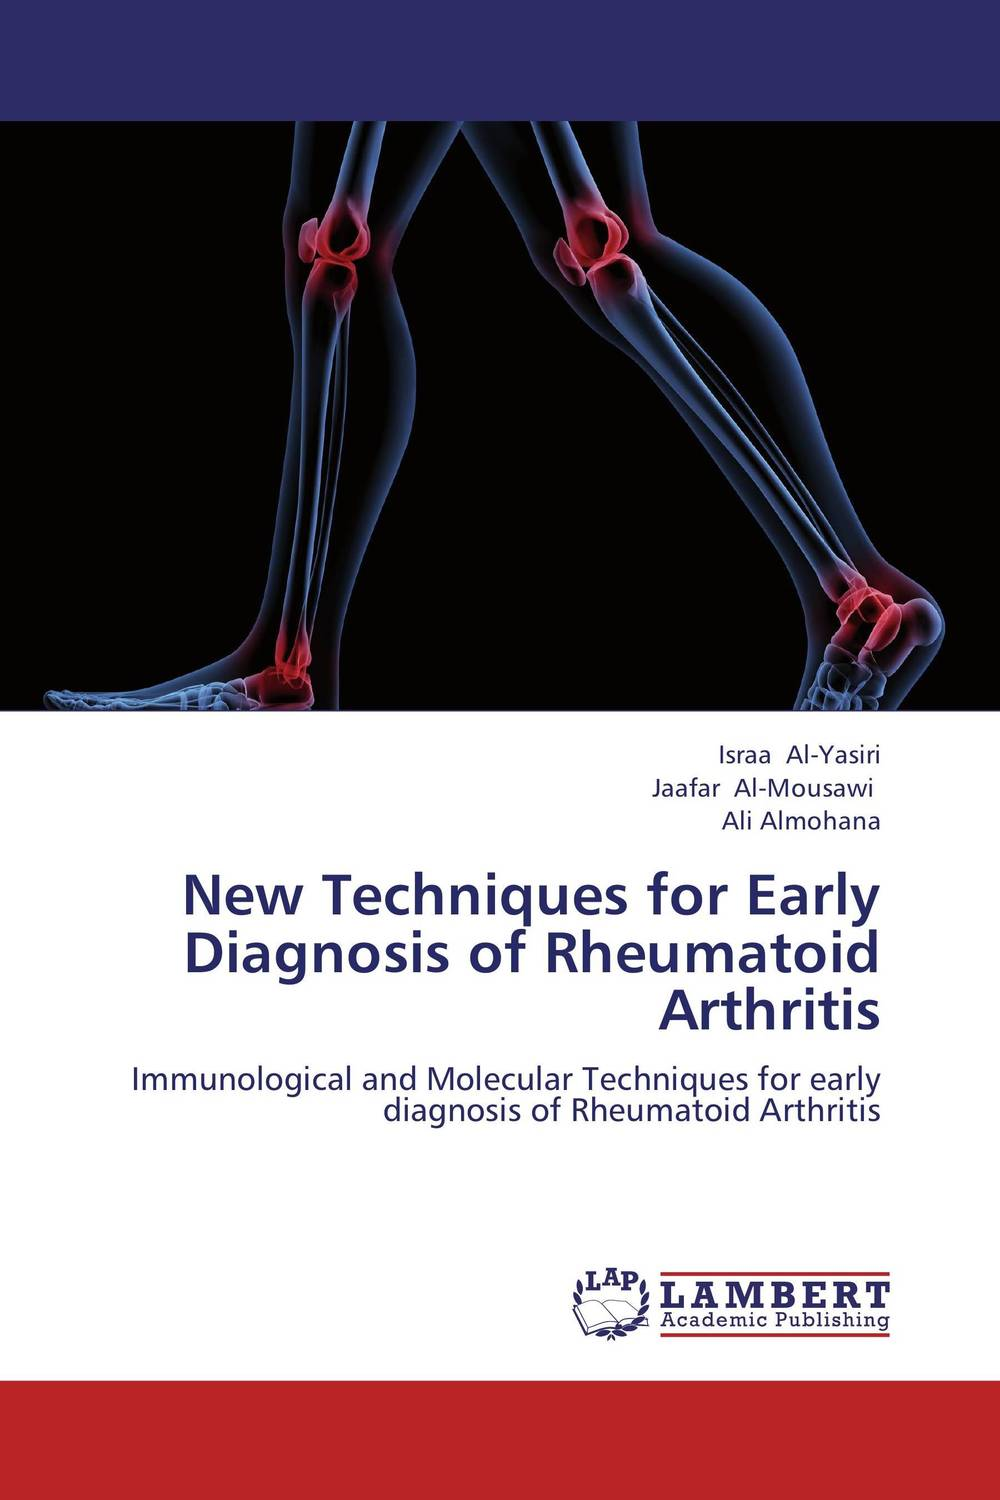 New Techniques for Early Diagnosis of Rheumatoid Arthritis new techniques for early diagnosis of rheumatoid arthritis